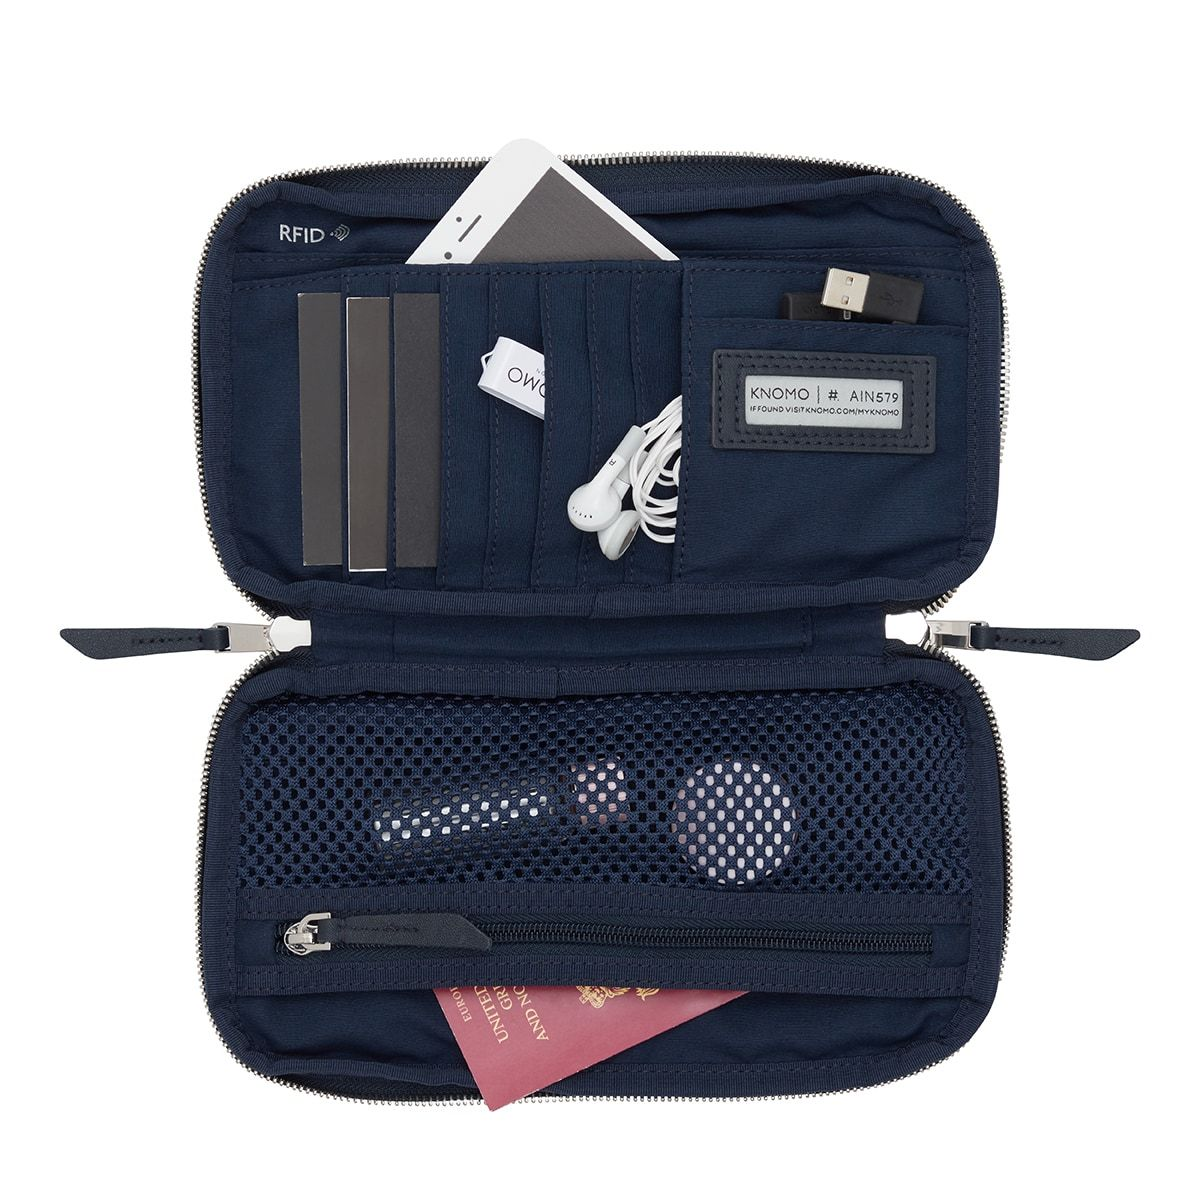 "KNOMO Knomad Travel Wallet Travel Organiser Internal With Items 8"" -  Dark Navy Blazer 